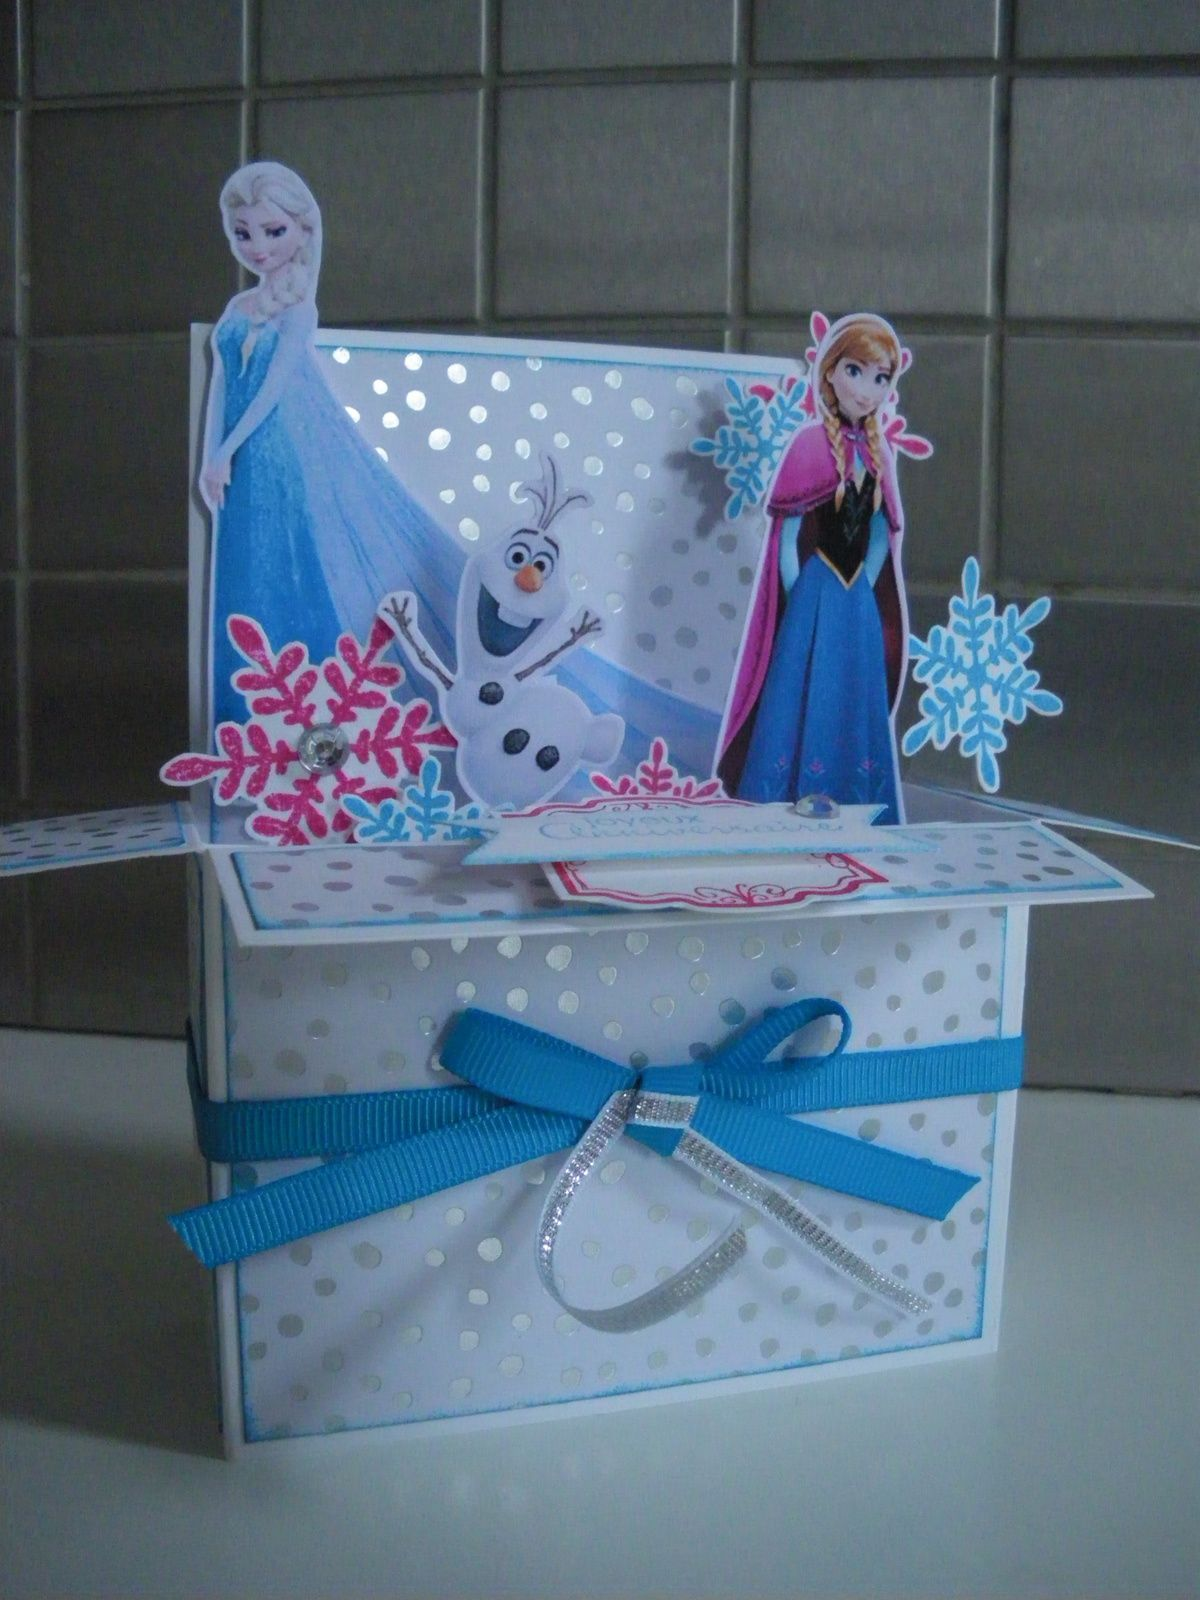 Carte Pop Up Reine des Neiges, Pop Up Card Frozen